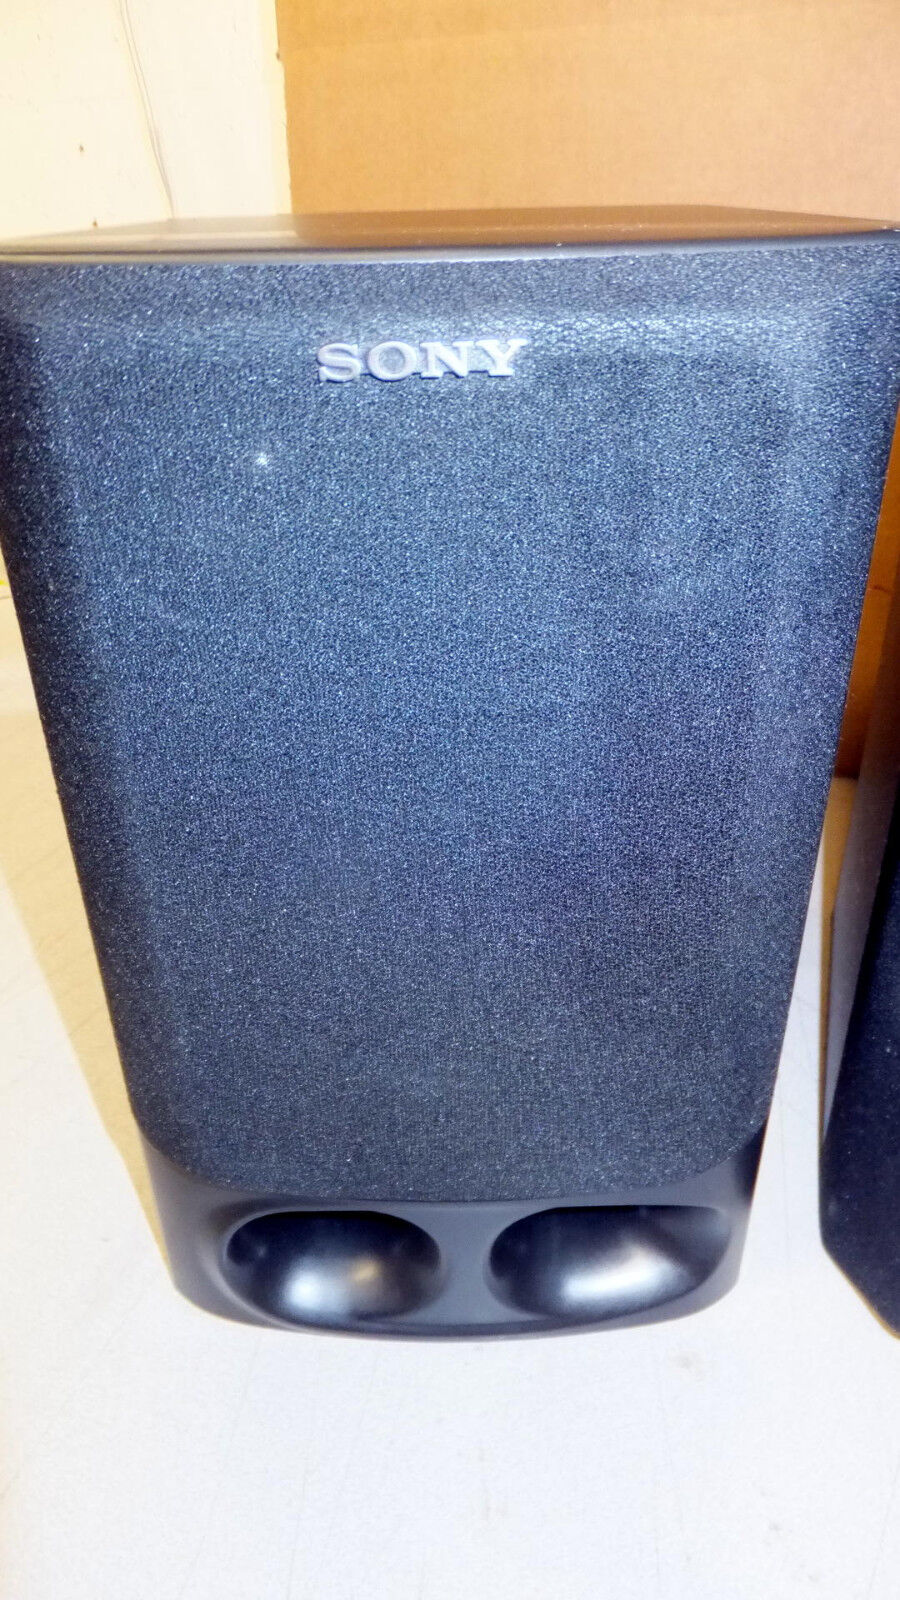 Used Two SONY SS-H10 speakers, connecting wire, w warranty